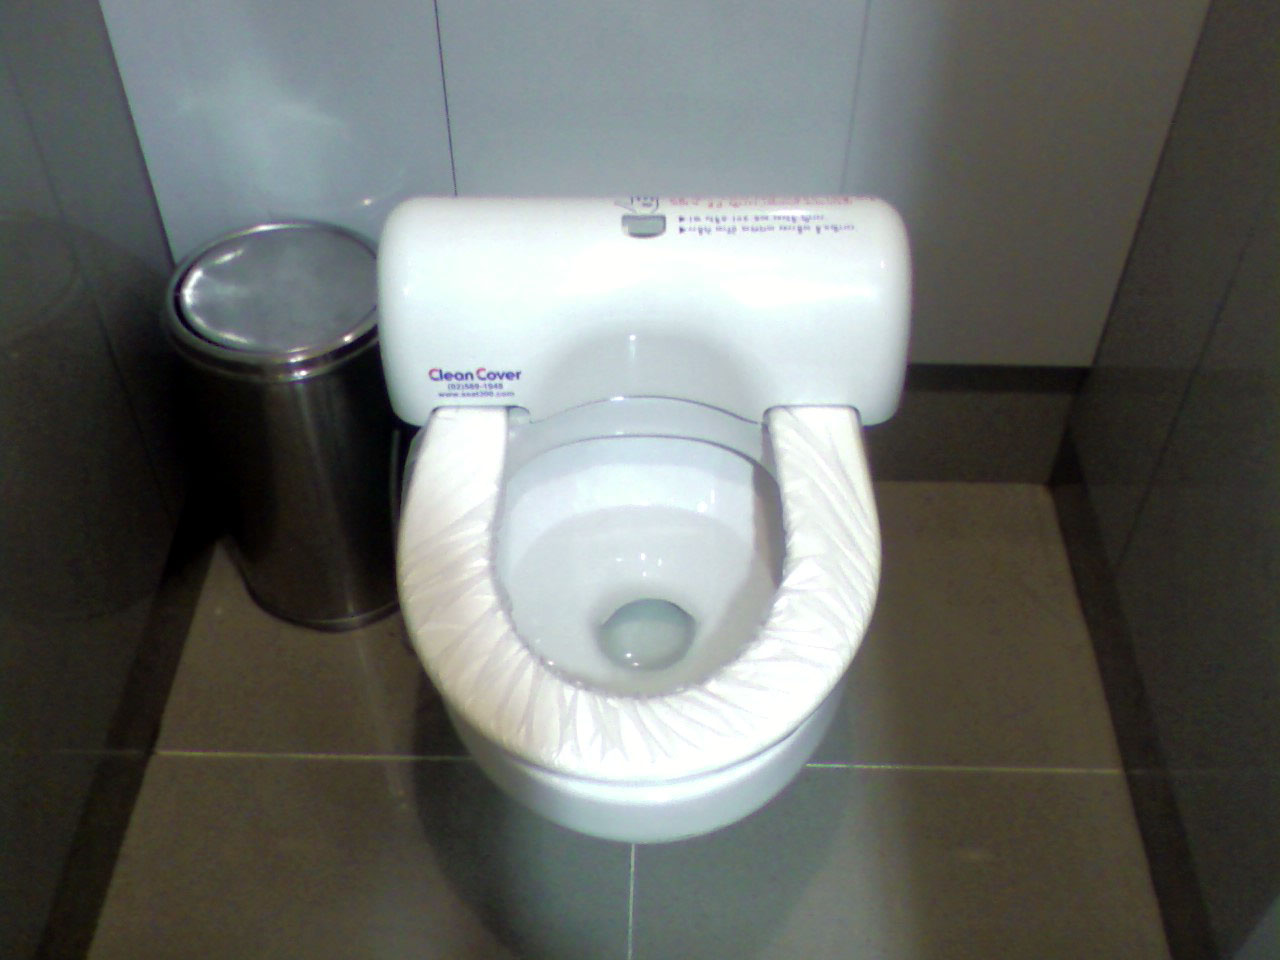 Auto-sensor Sanitary Toilet Seat, Auto-sensor Sanitary Toilet Seat  Suppliers and Manufacturers at Alibaba.com